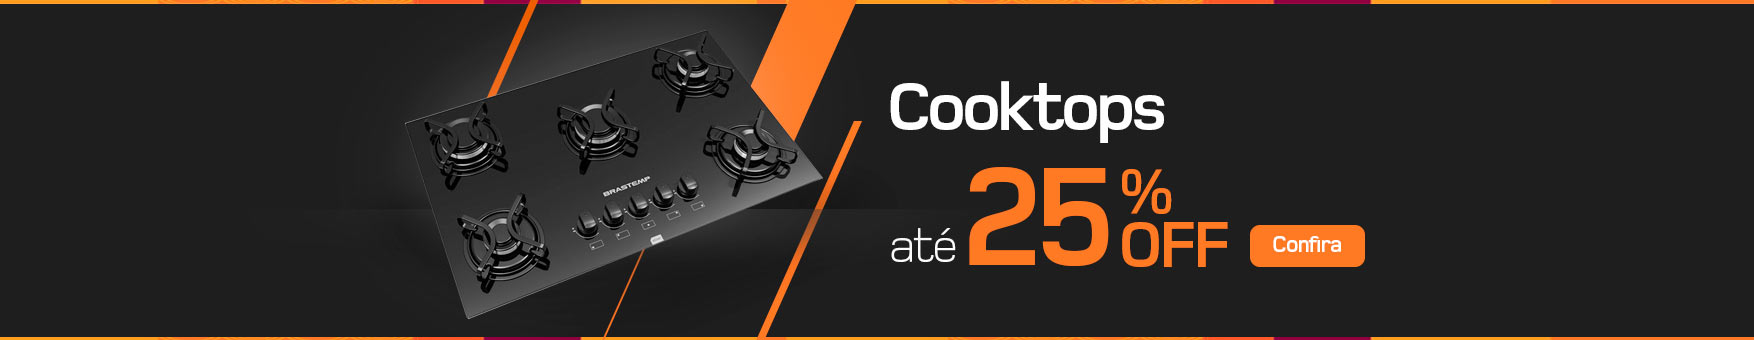 cooktops 25 off